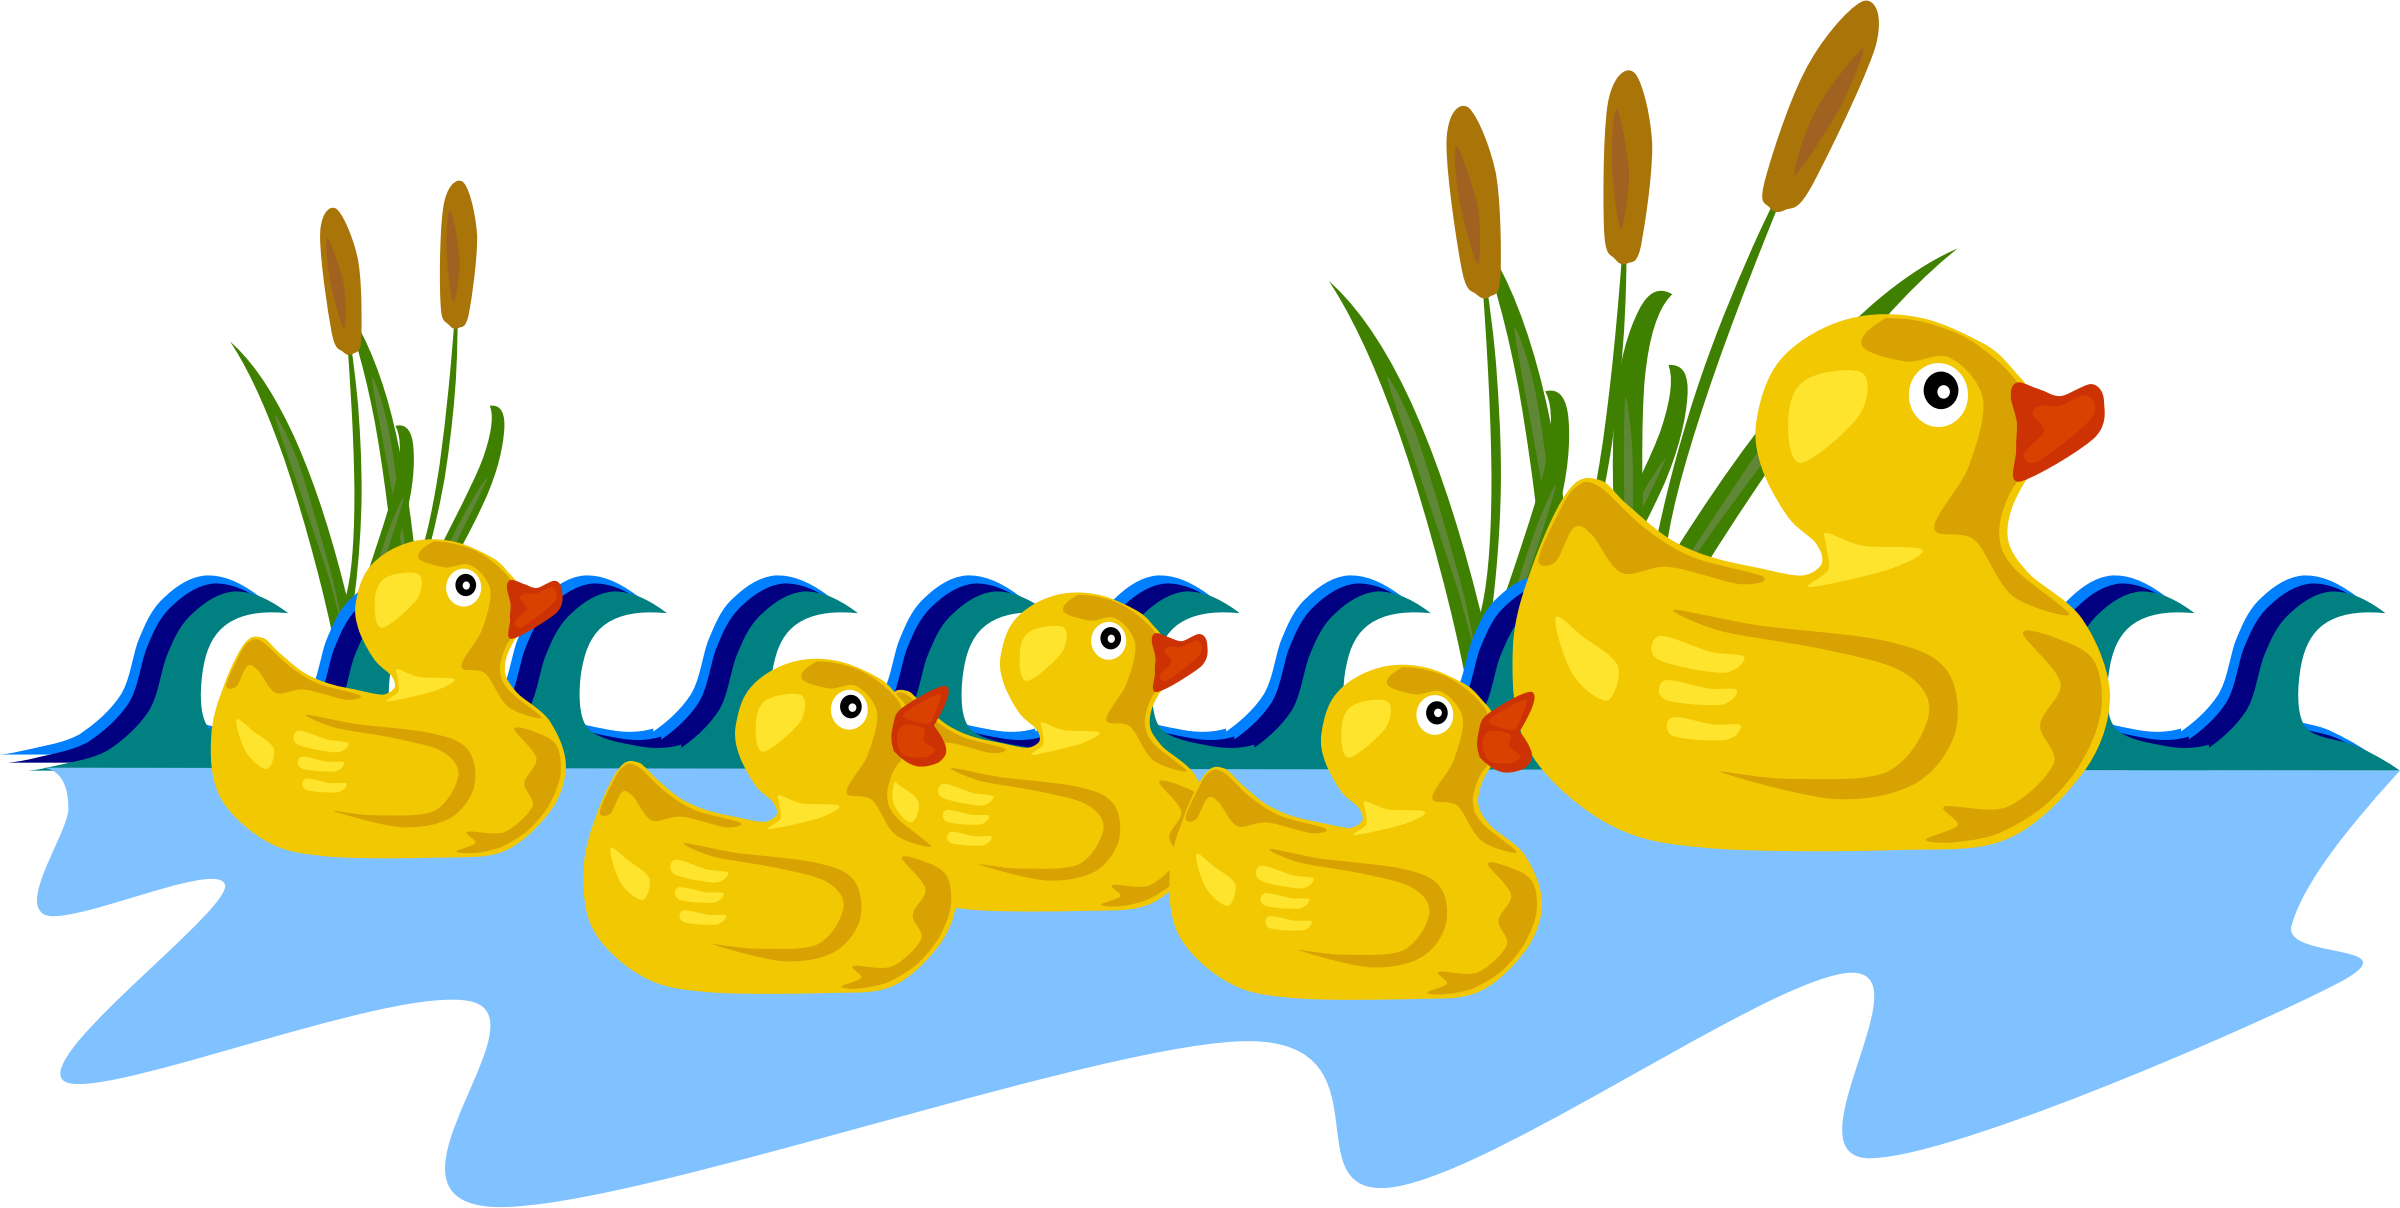 Rubber Duck Family by Gerald_G